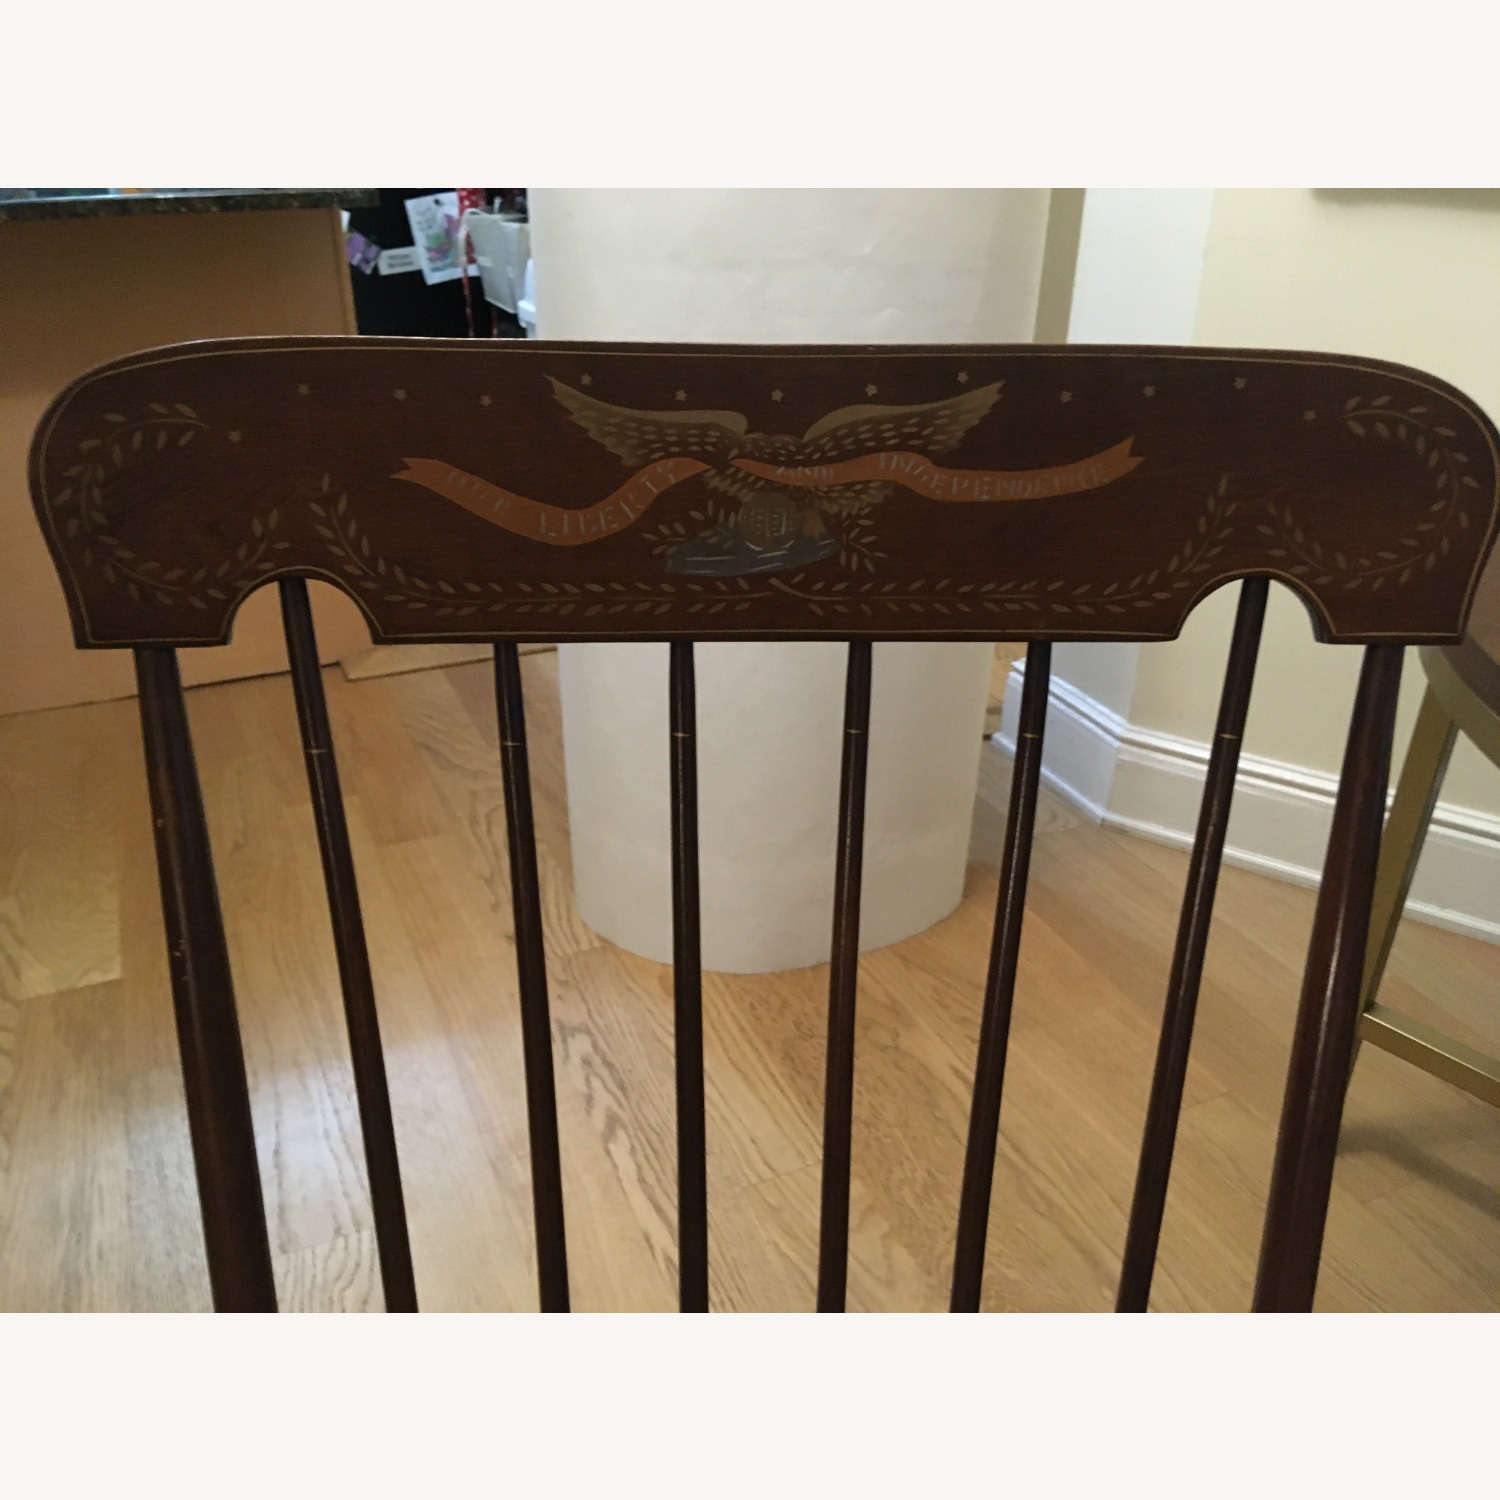 Vintage Rocking Chair with Americana Stenciling - image-5